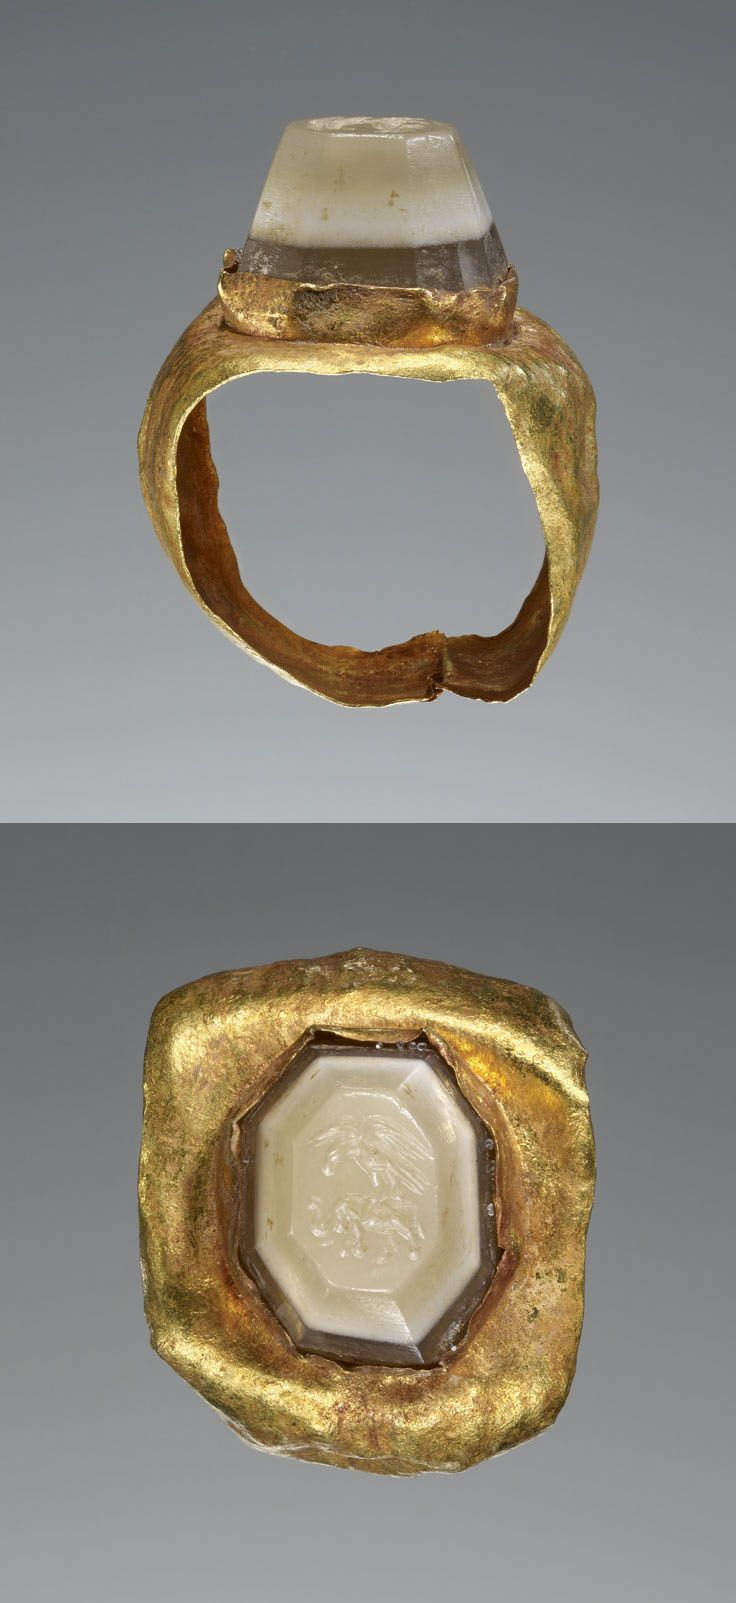 Engraved Gem Inset Into a Ring, Roman, 2nd - 3rd century, Gem: banded agate, green/white/dark green; ring: gold-foil, 1.1 x 0.9 x 0.7 cm (7/16 x 3/8 x 1/4 in.)